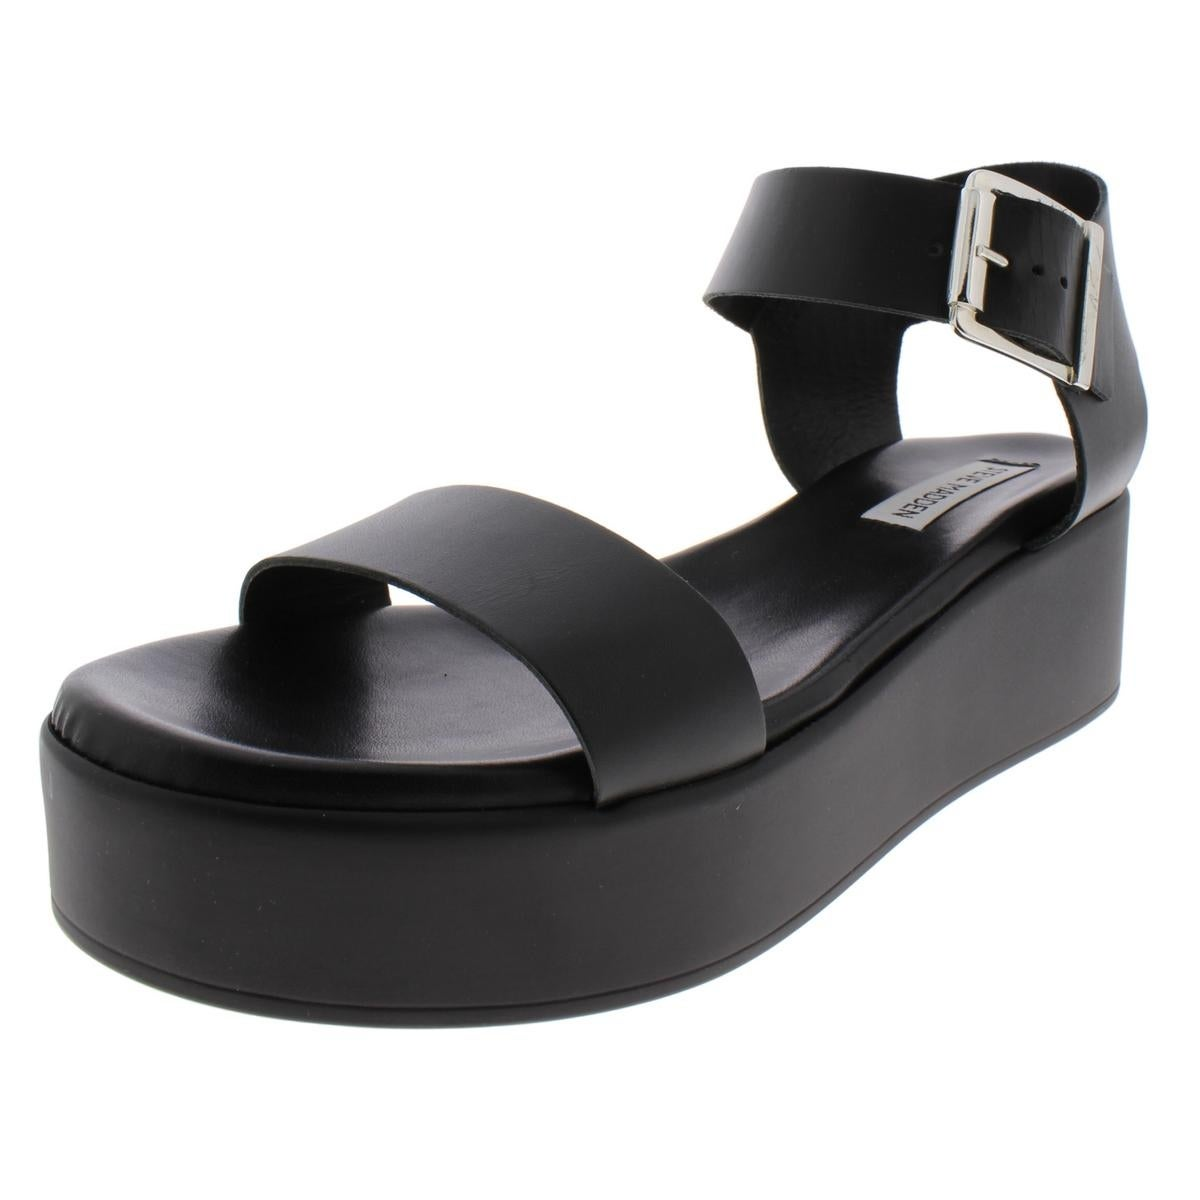 052e4ee807e Steve Madden Womens Recover Wedge Sandals Leather Ankle Wrap